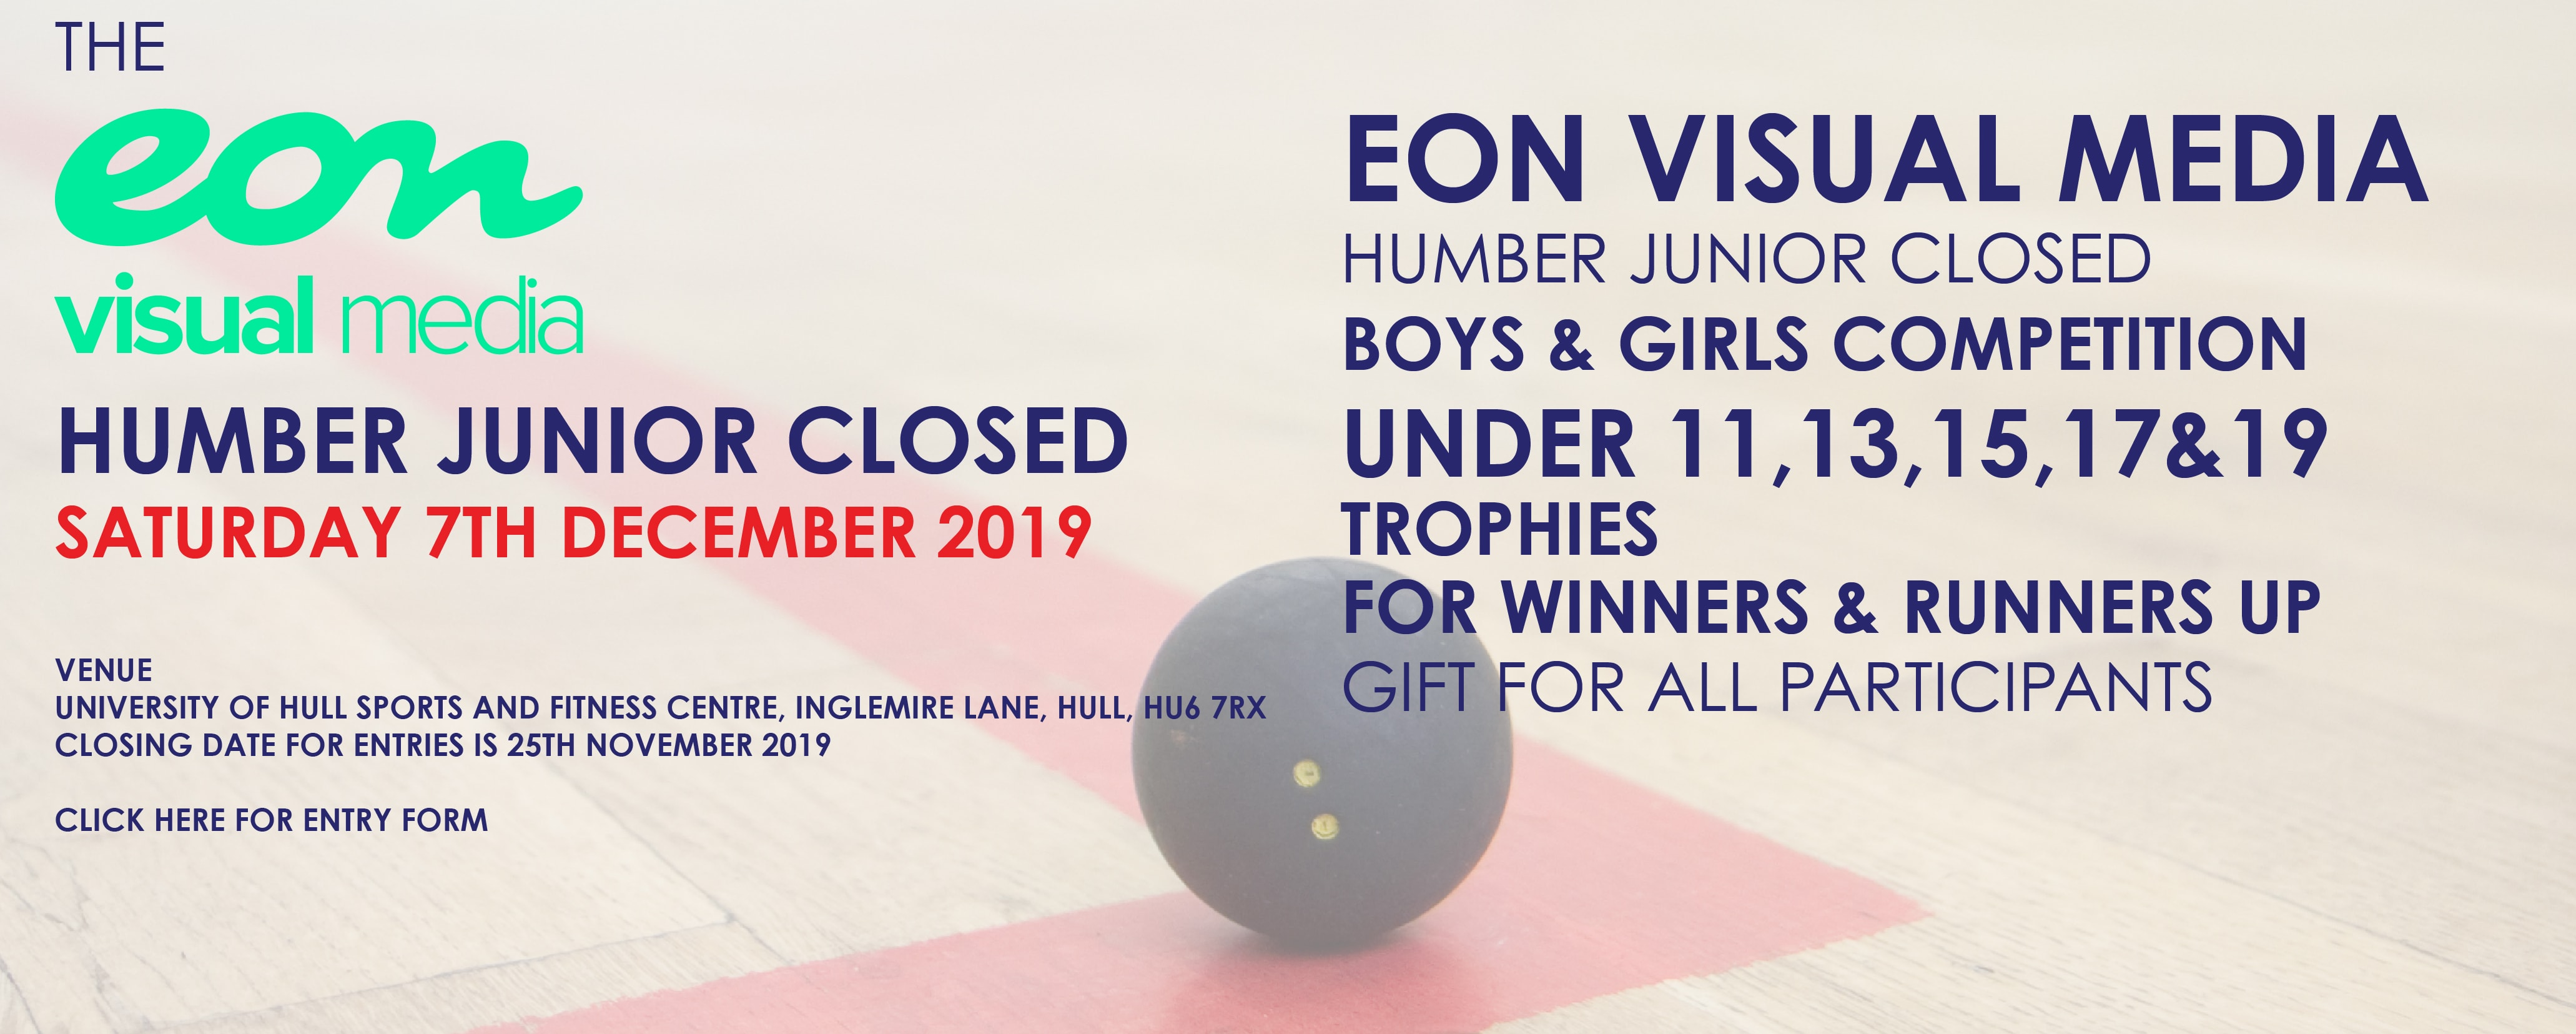 The Eon Visual Media Humber Junior Closed 2019